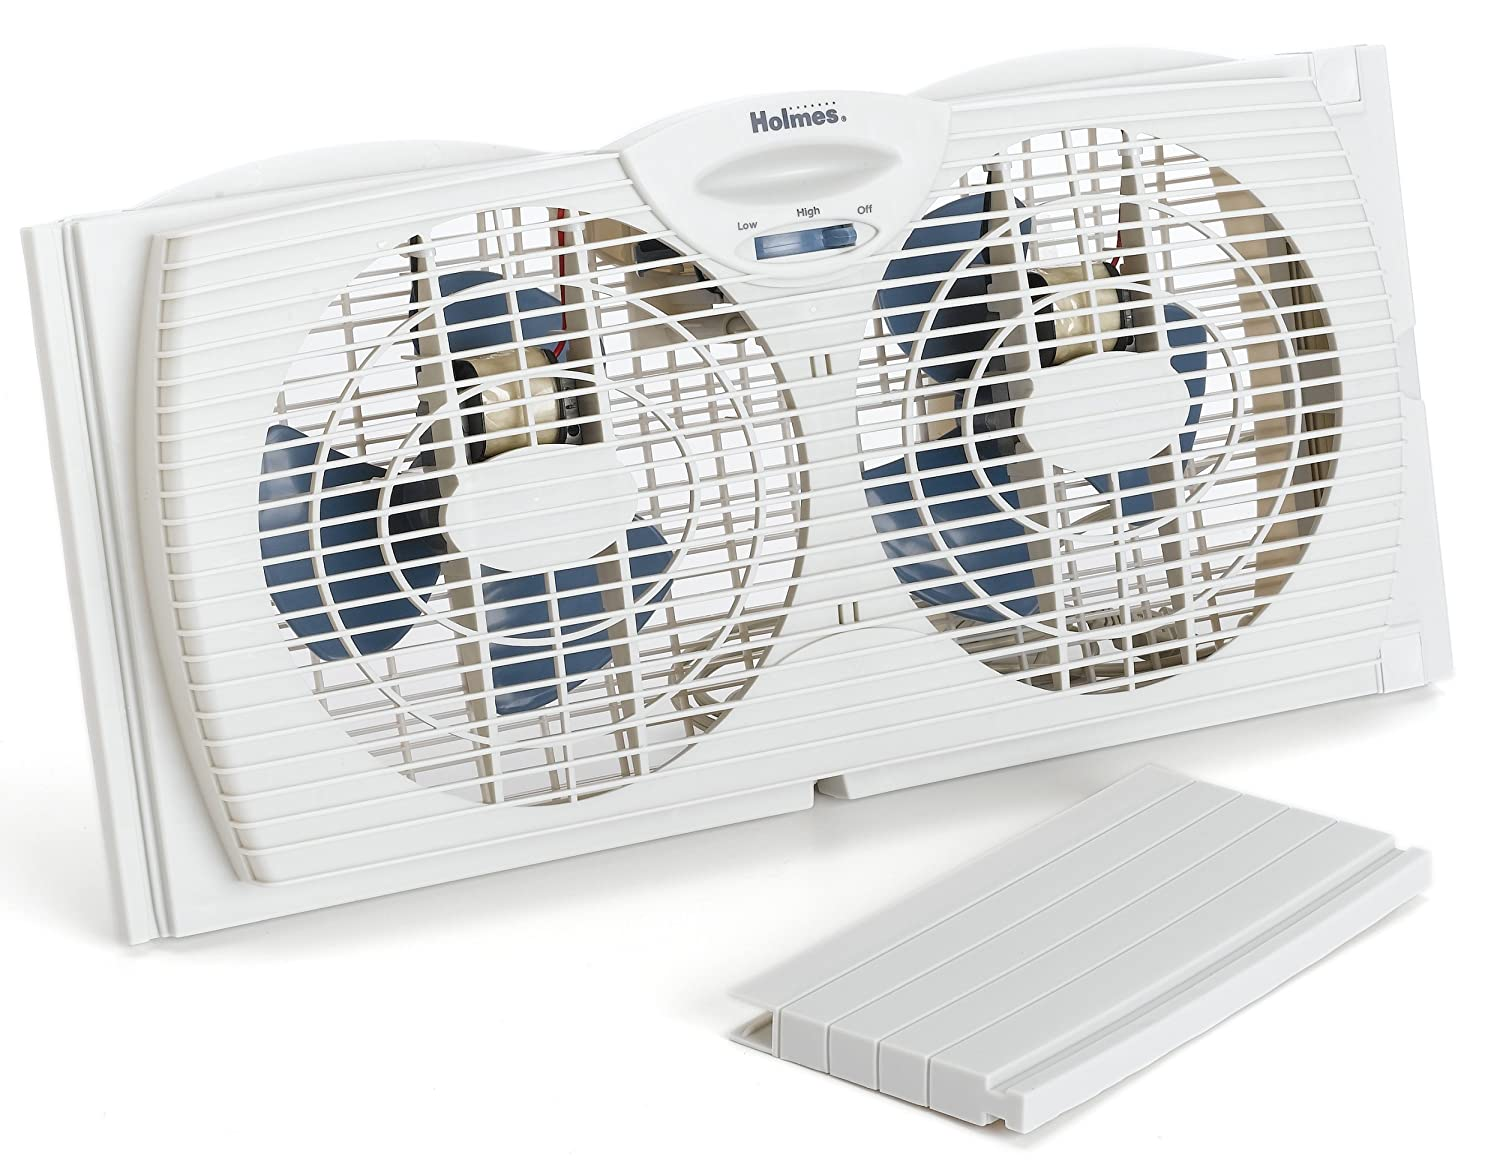 Holmes HAWF2021-WMUM: The window fan designed for affordability